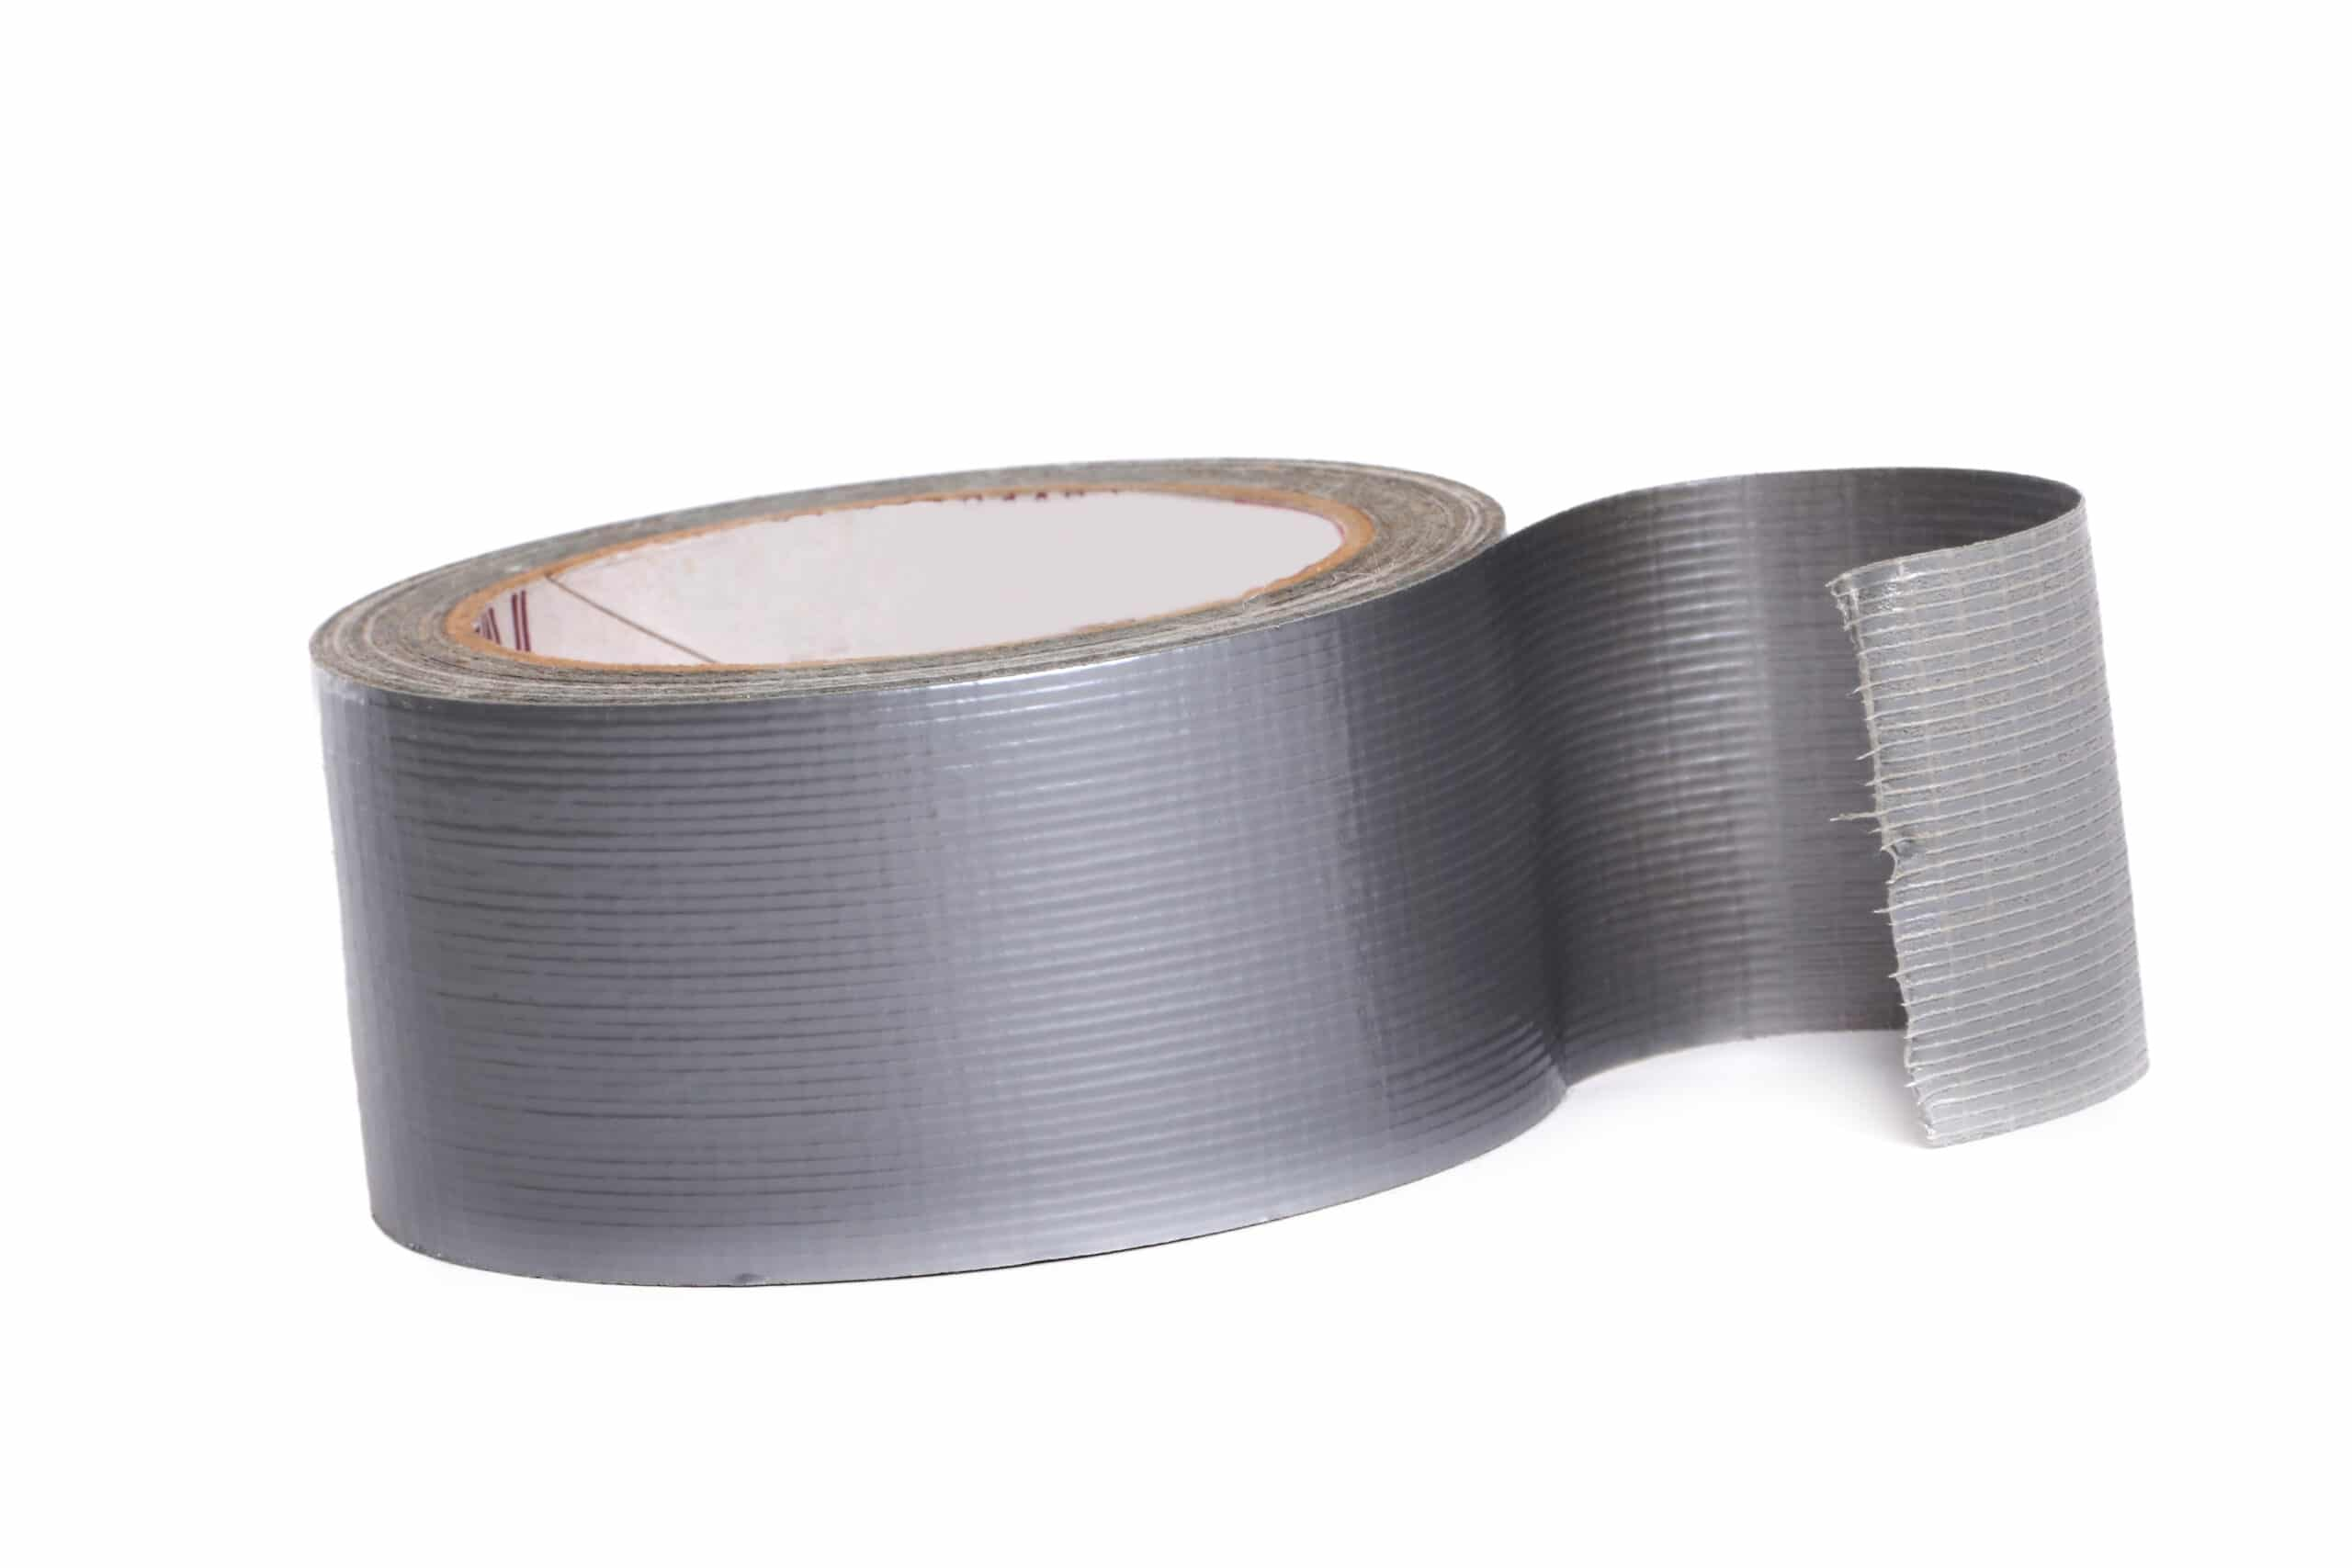 A roll of silver duct tape.